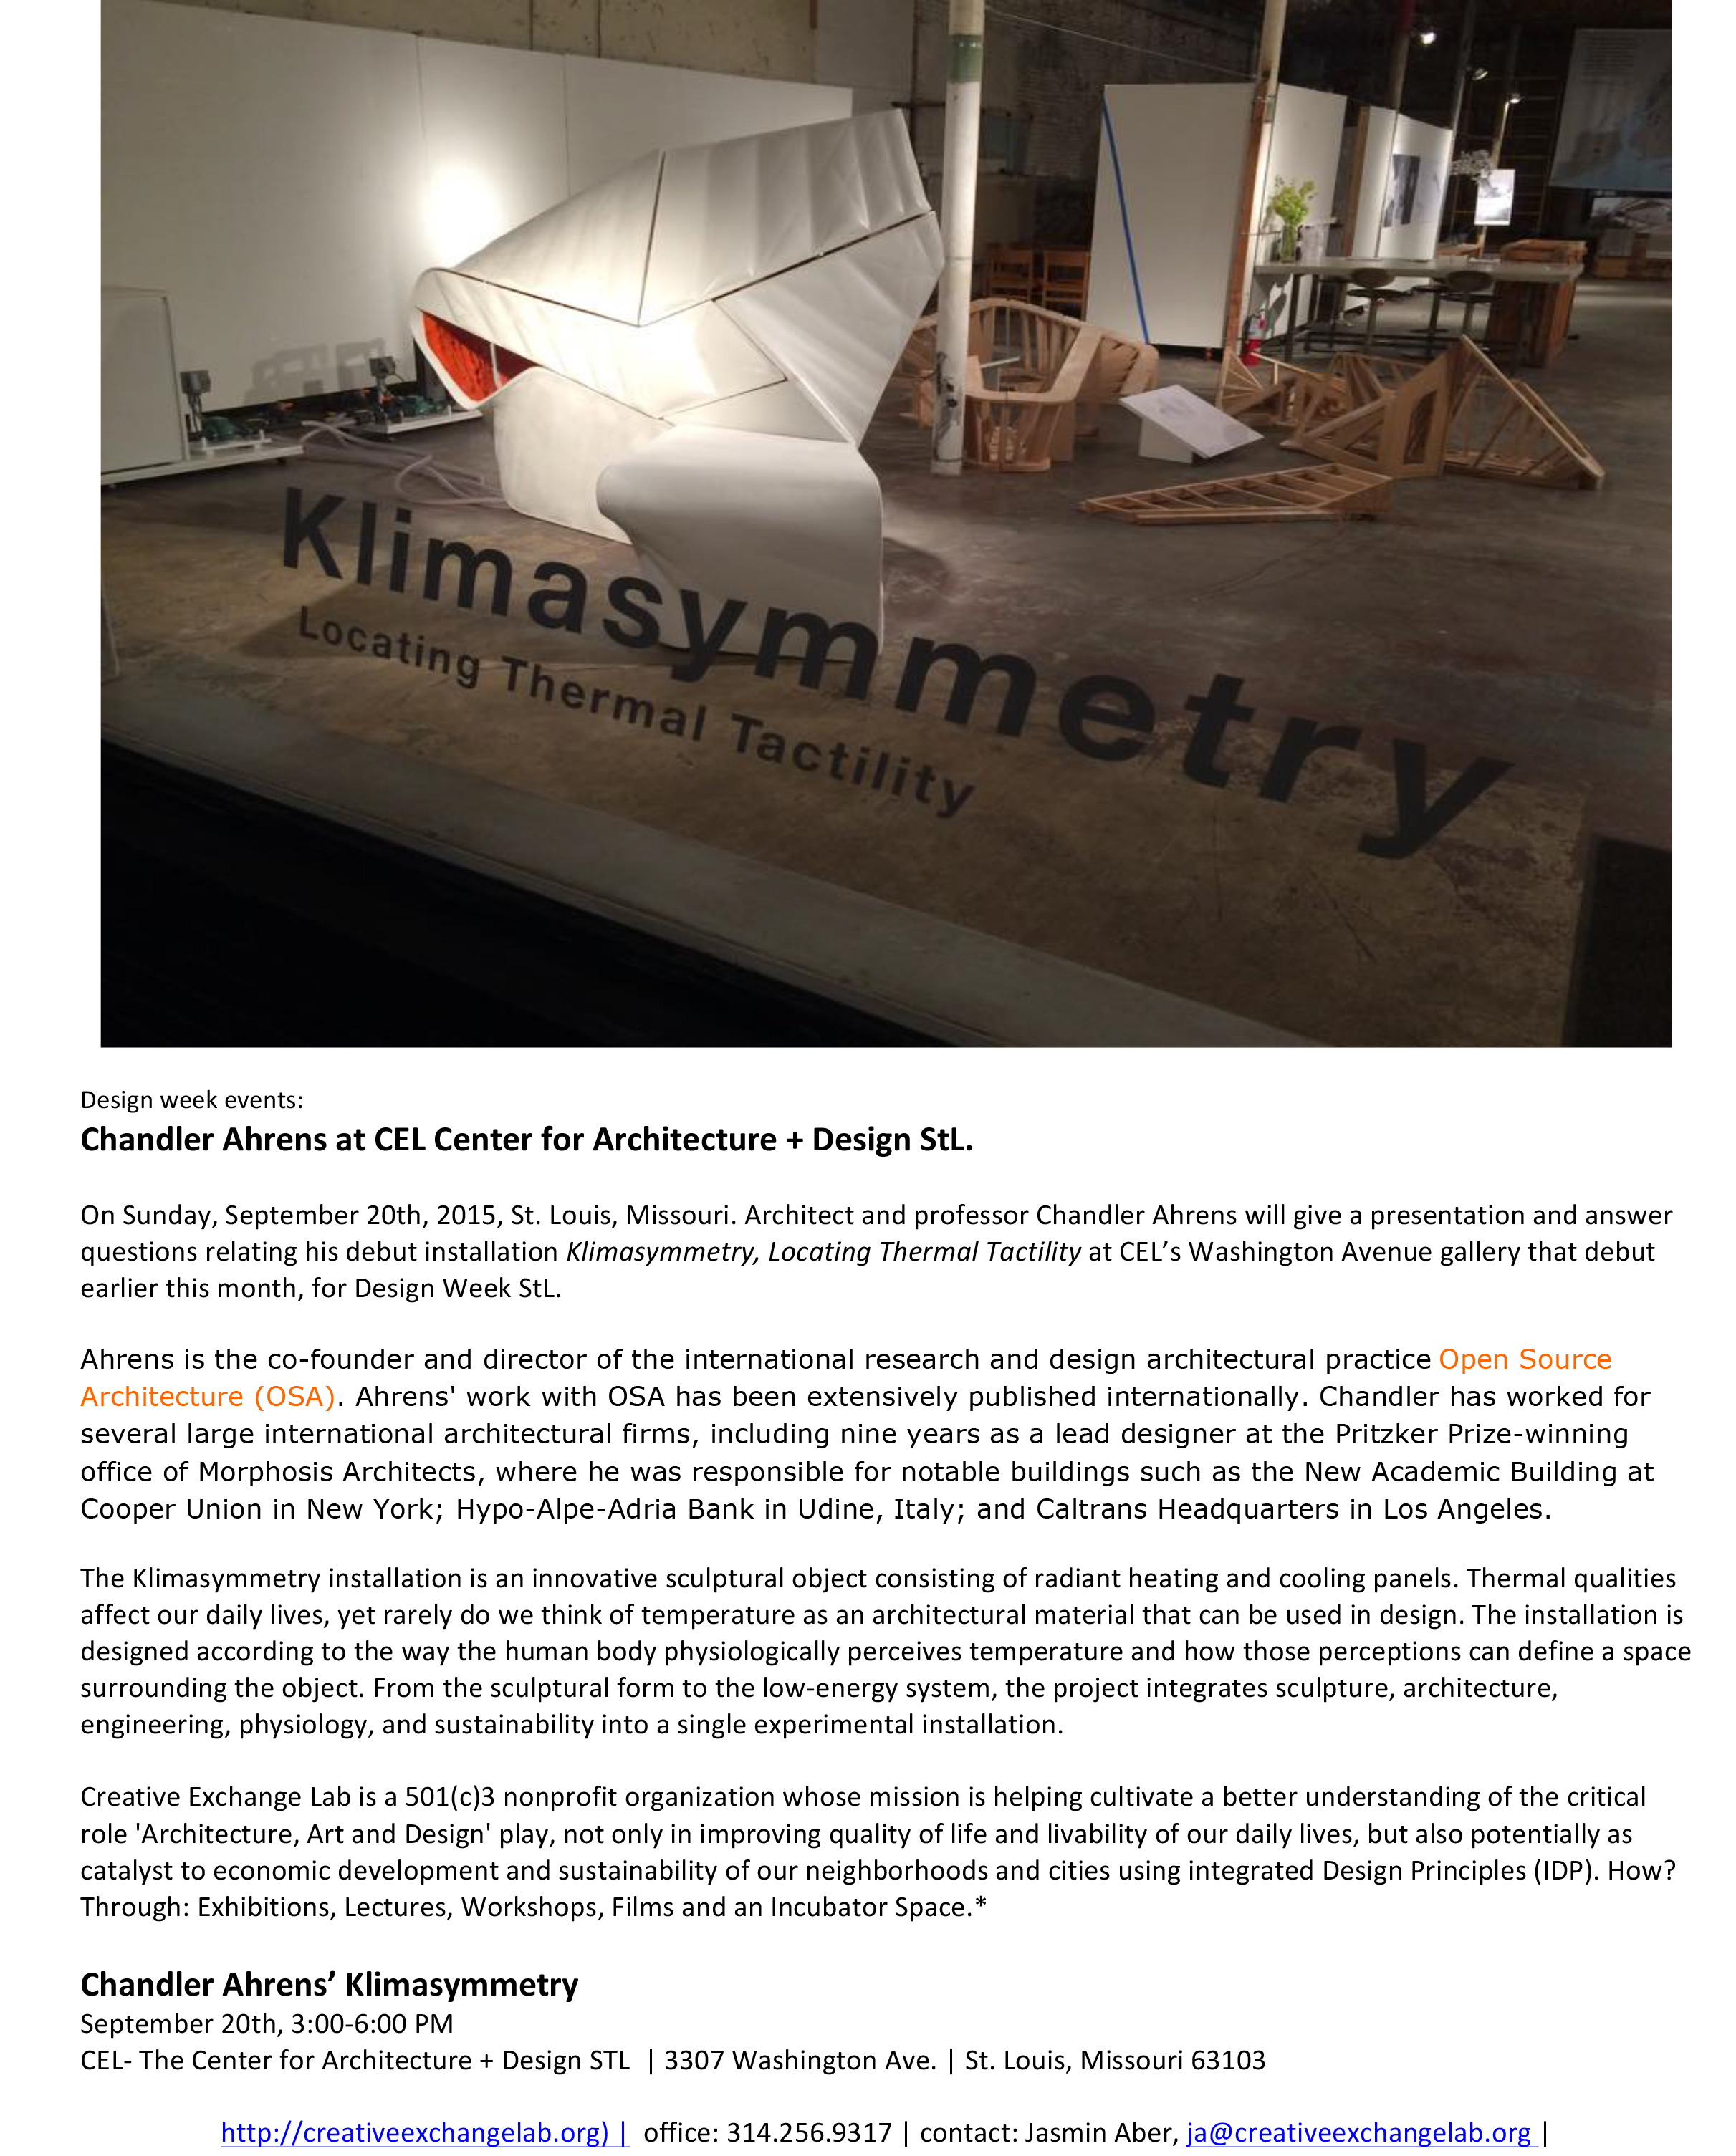 Microsoft Word - Klimasymmetry press release-4 design week x.doc